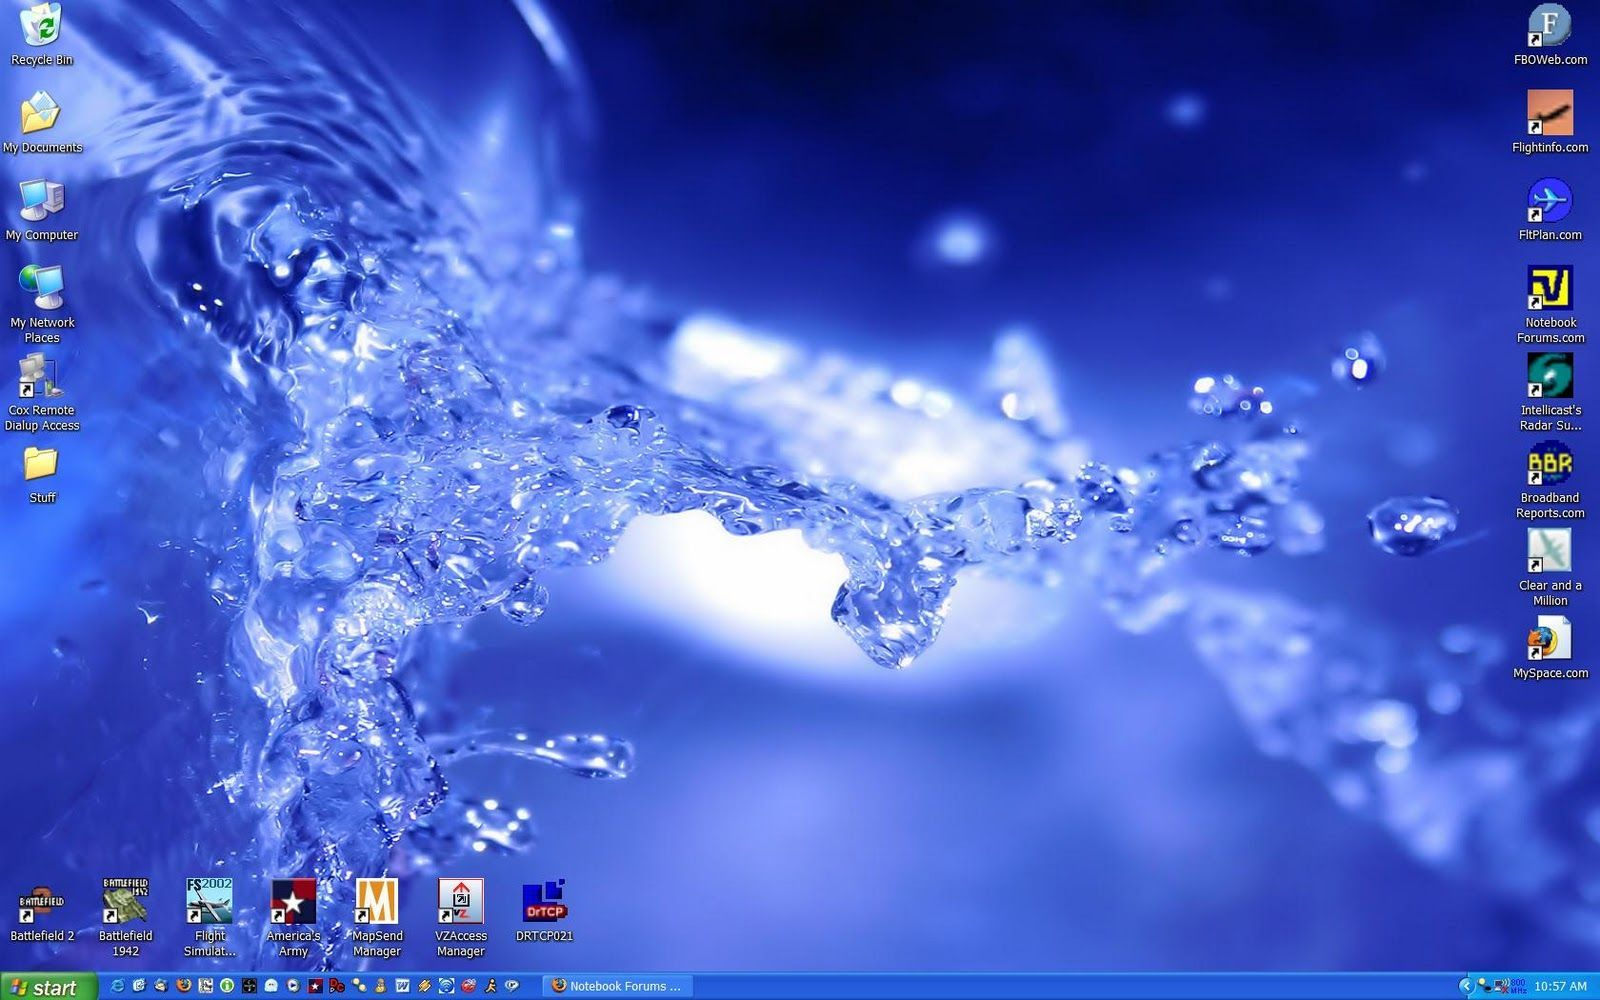 Dell Laptop Backgrounds Posted By Christopher Thompson